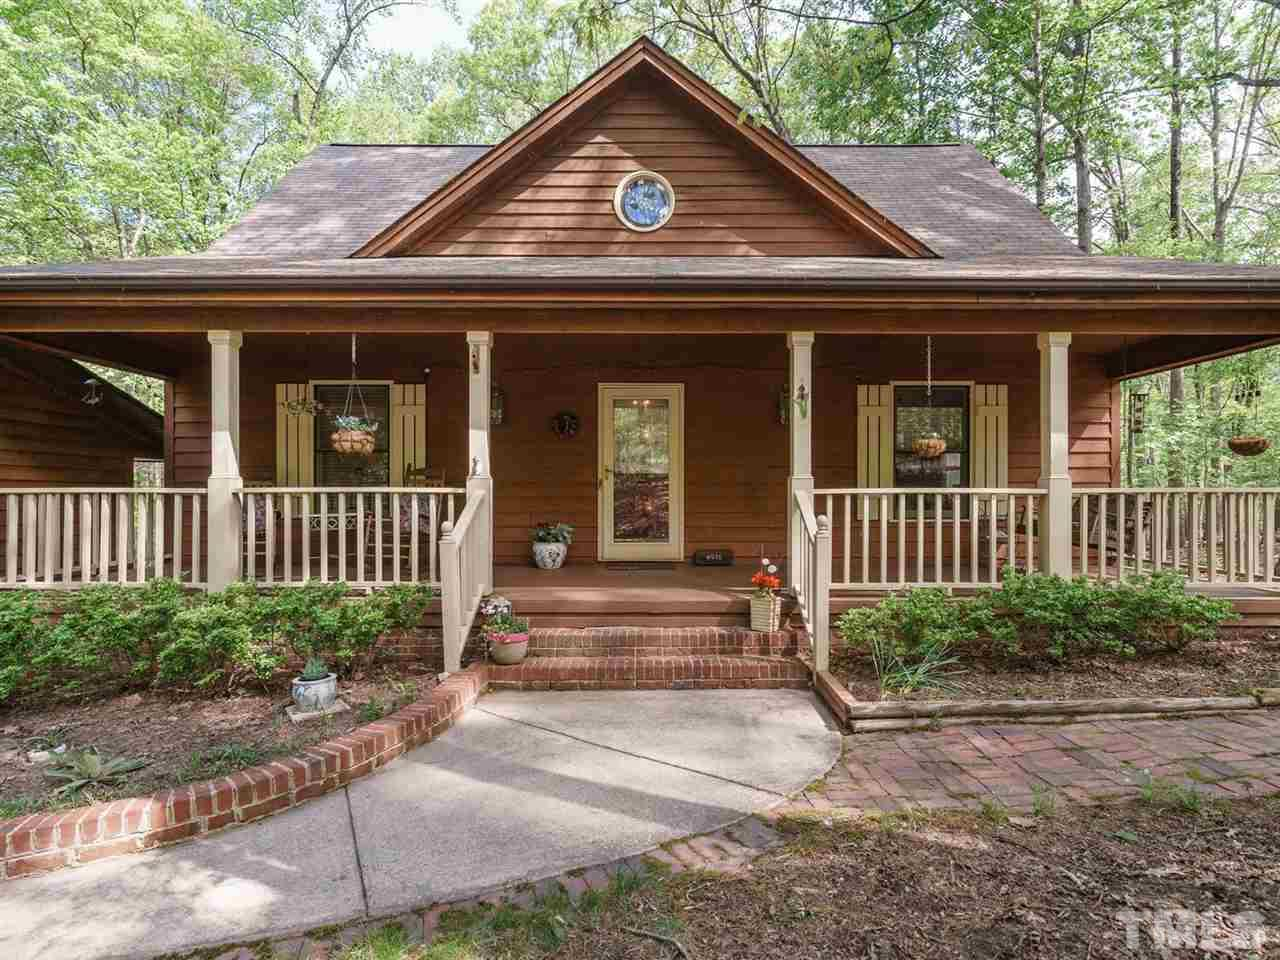 4916 Swisswood Dr, Raleigh, NC